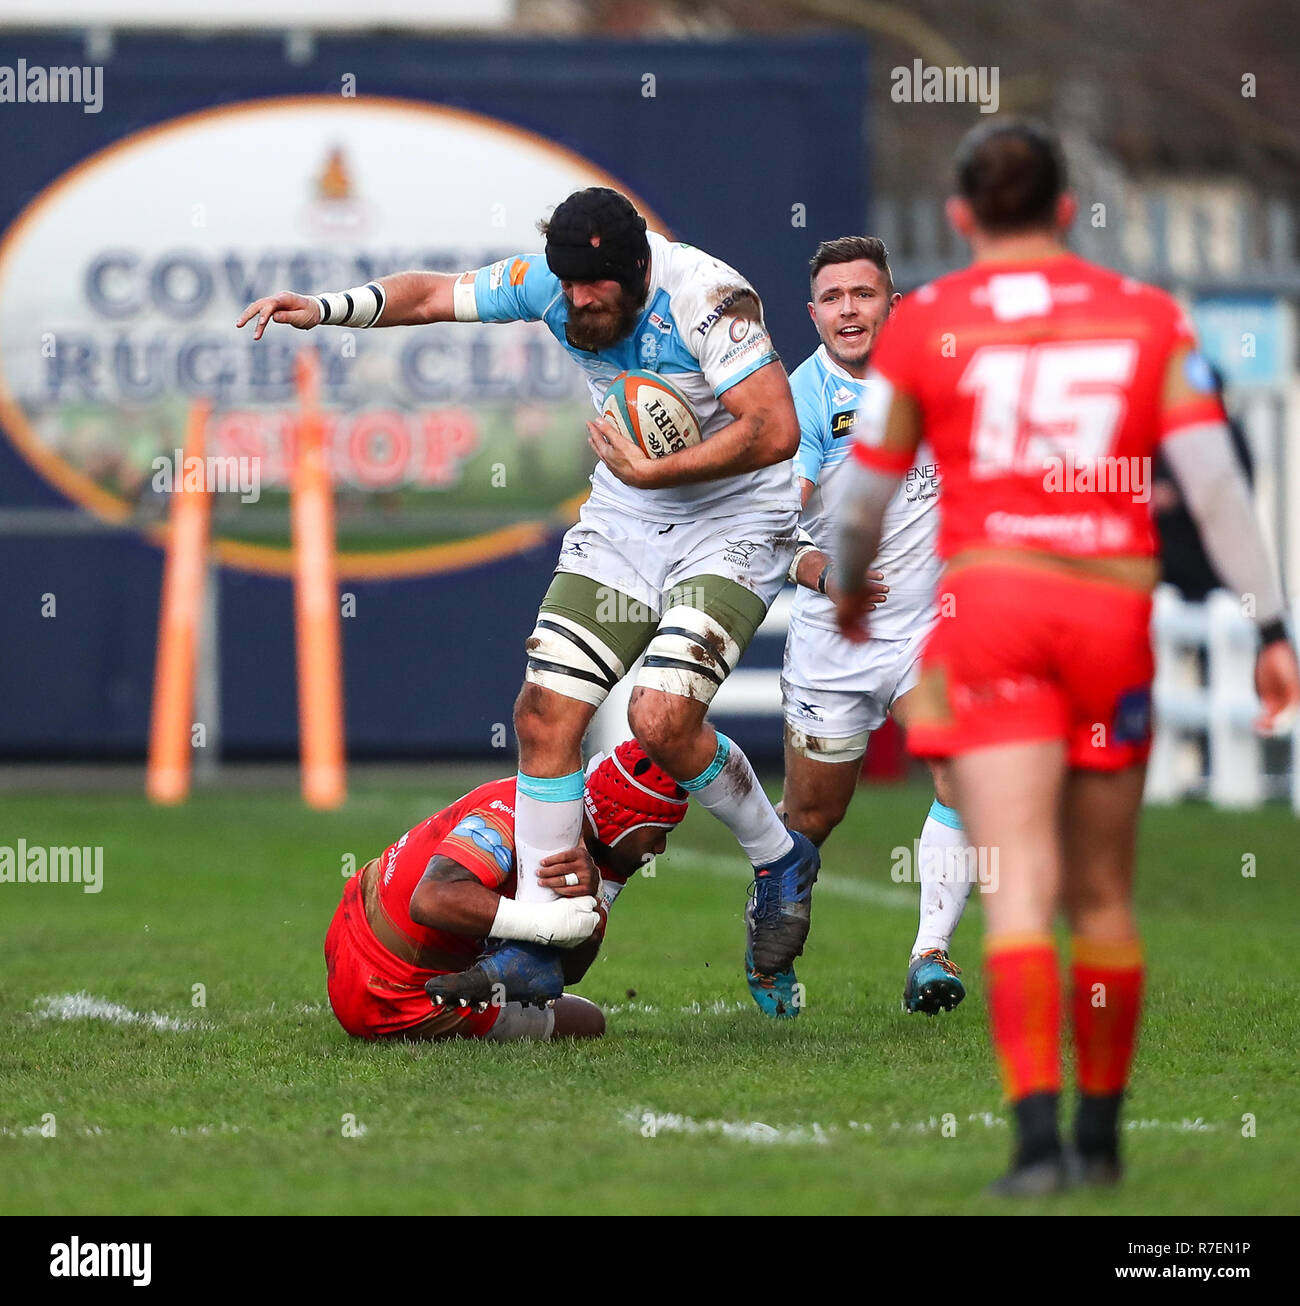 Coventry, UK. 8th December 2018.  Morgan Eames on the charge for Doncaster Knights during the Championship Cup match played between Coventry rfc and Doncaster Knights rfc at the Butts Park Arena, Coventry. Credit: Phil Hutchinson/Alamy Live News Stock Photo